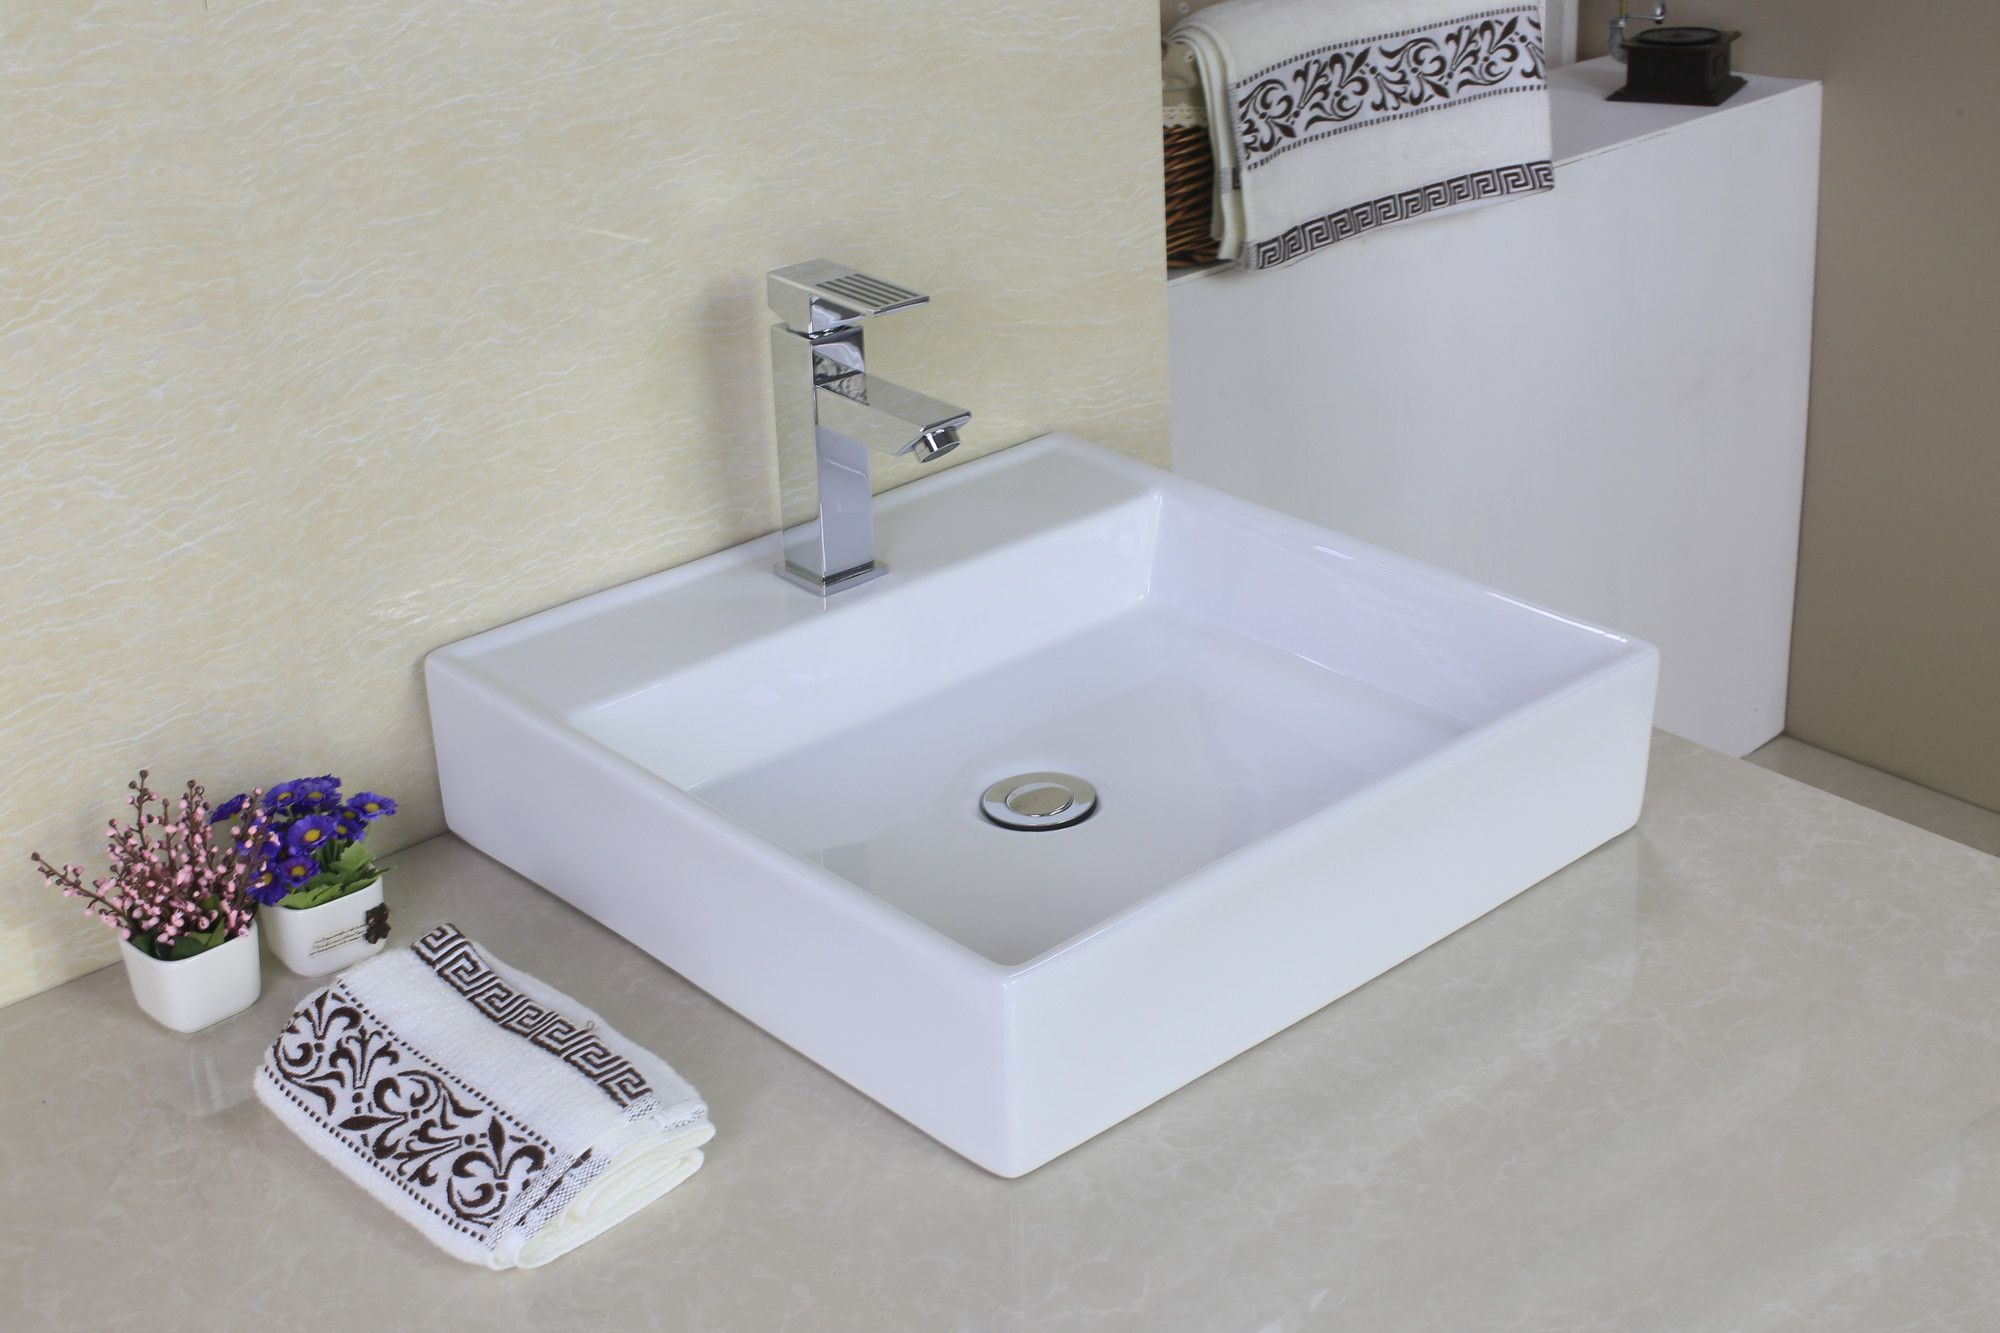 Ceramic Rectangular Vessel Bathroom Sink   Sinks and Products